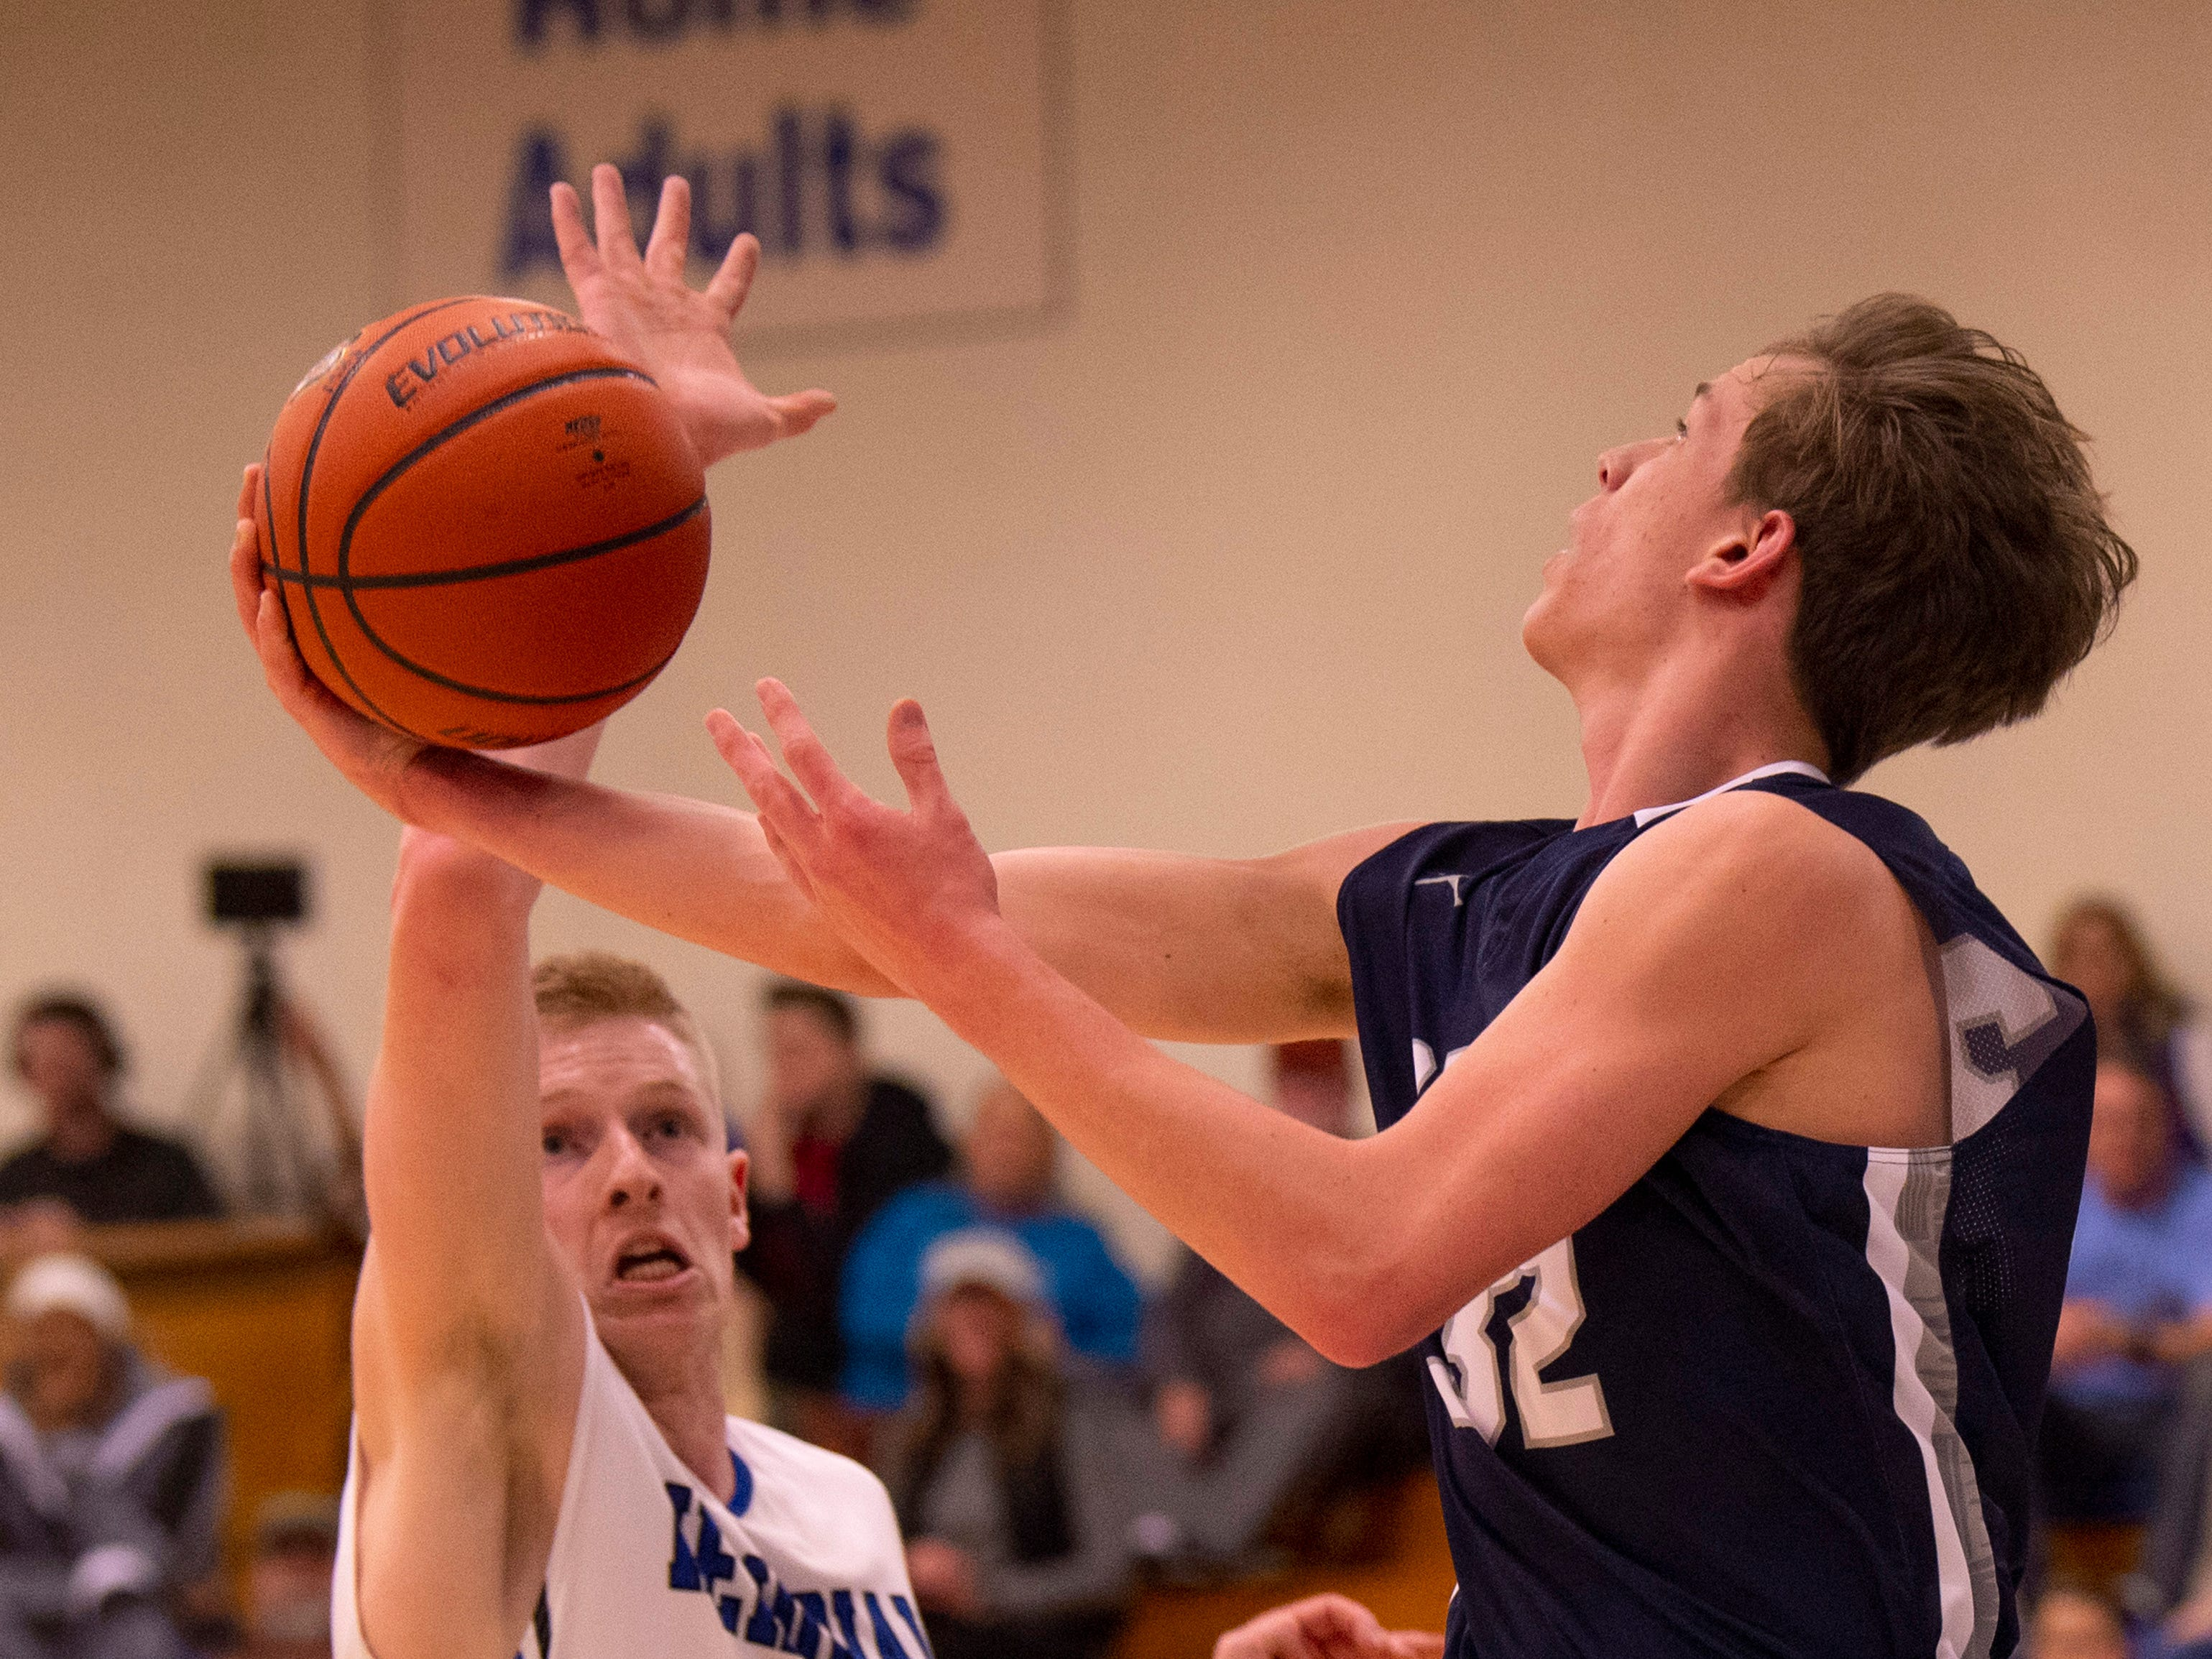 Memorial's Sam DeVault (41) tries to block the shot of Reitz's Ethan Higgs (32) in the first round of the SIAC Tournament at Memorial High School Tuesday night.